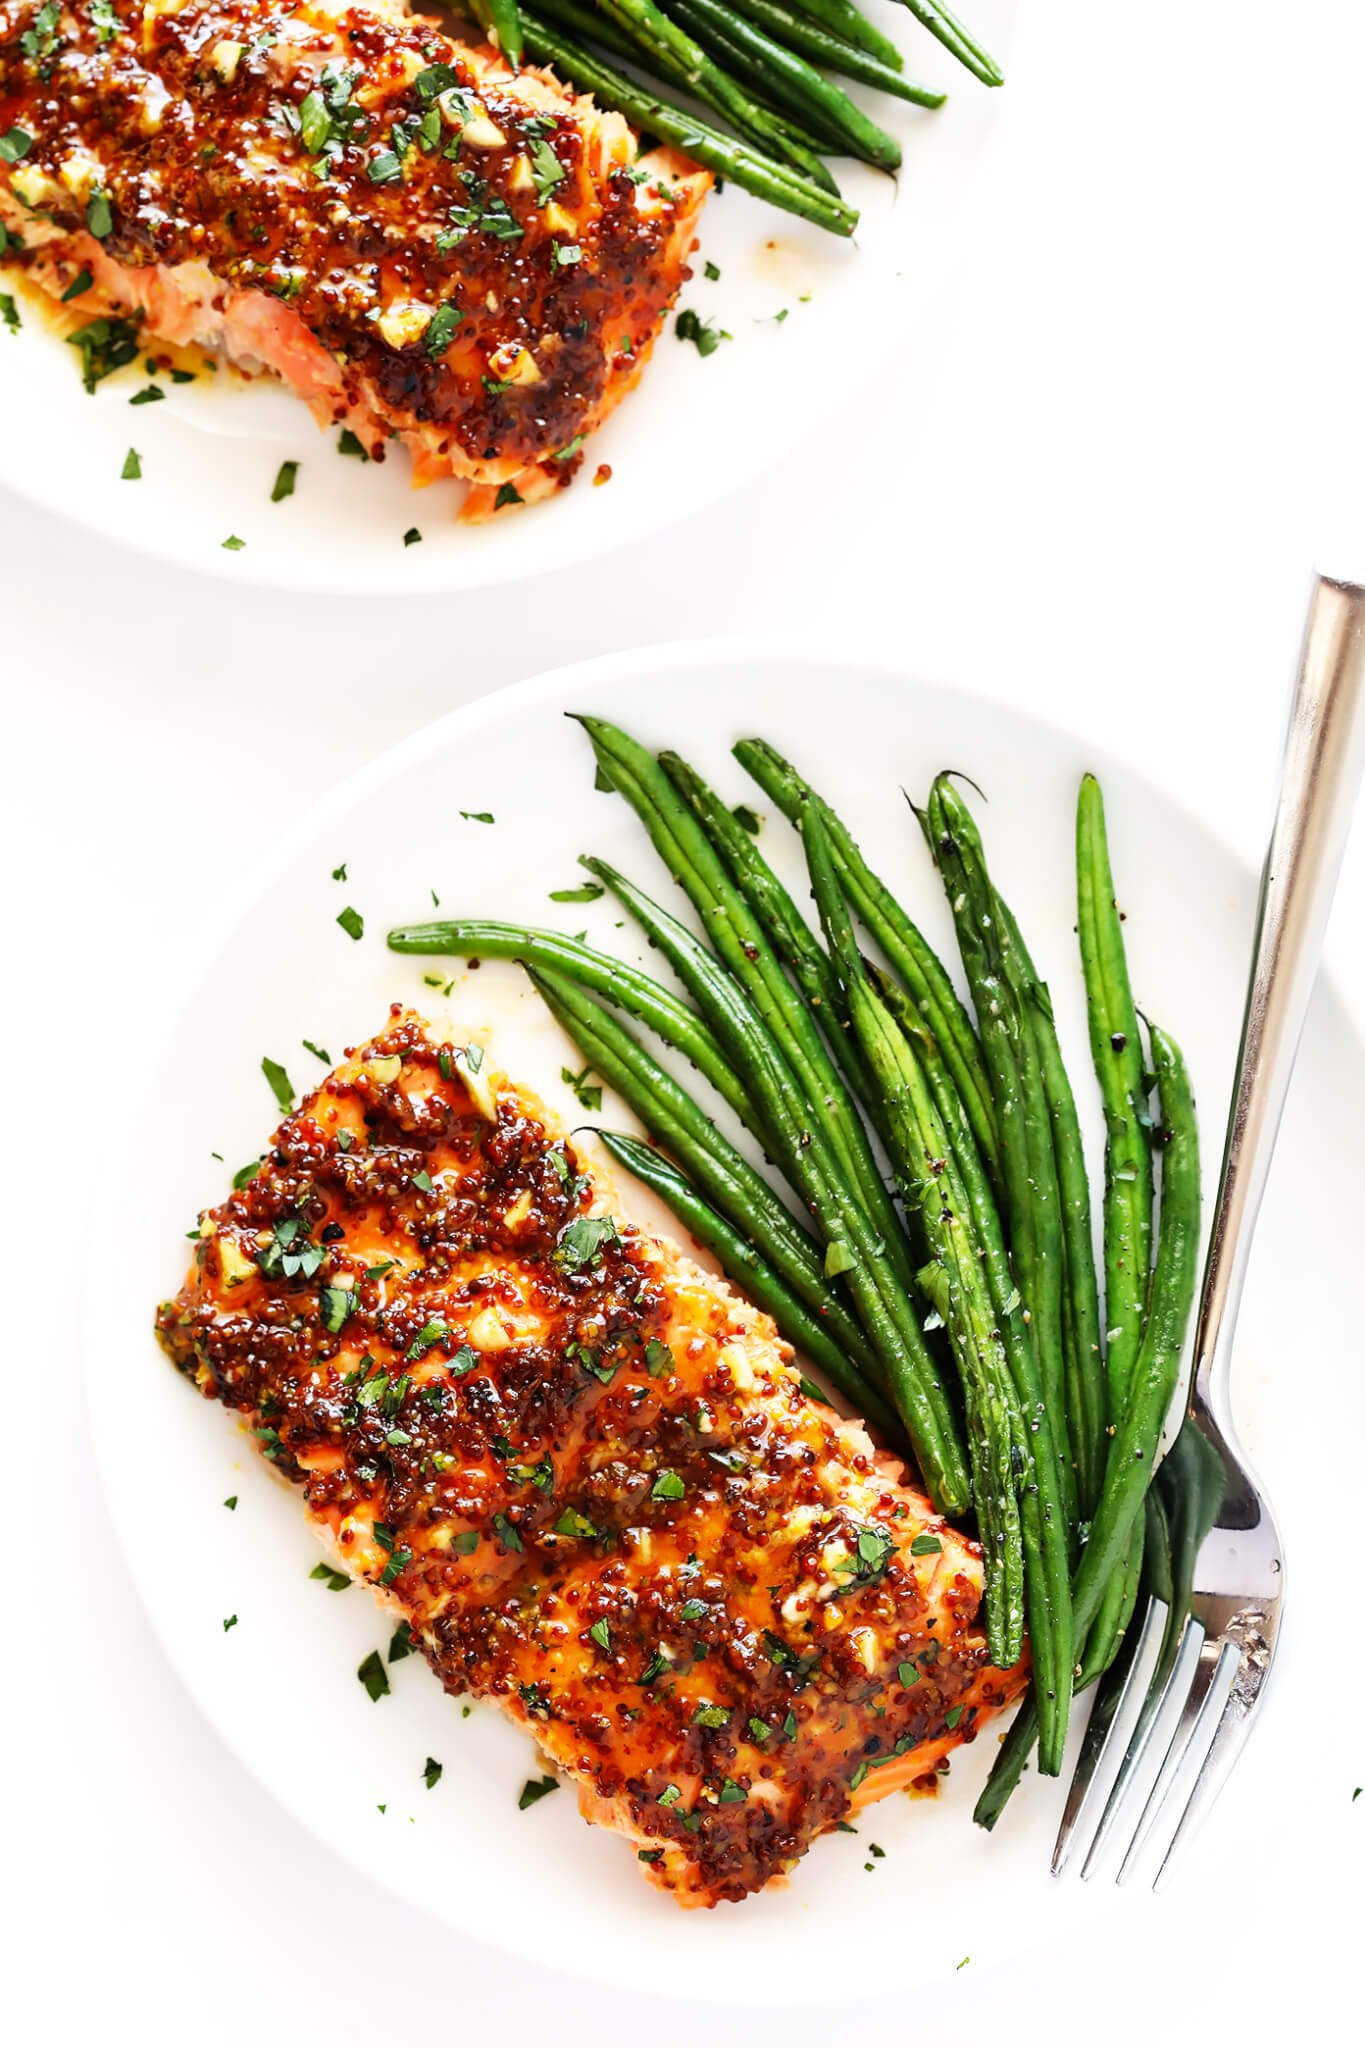 Grilled or Baked Honey Mustard Salmon